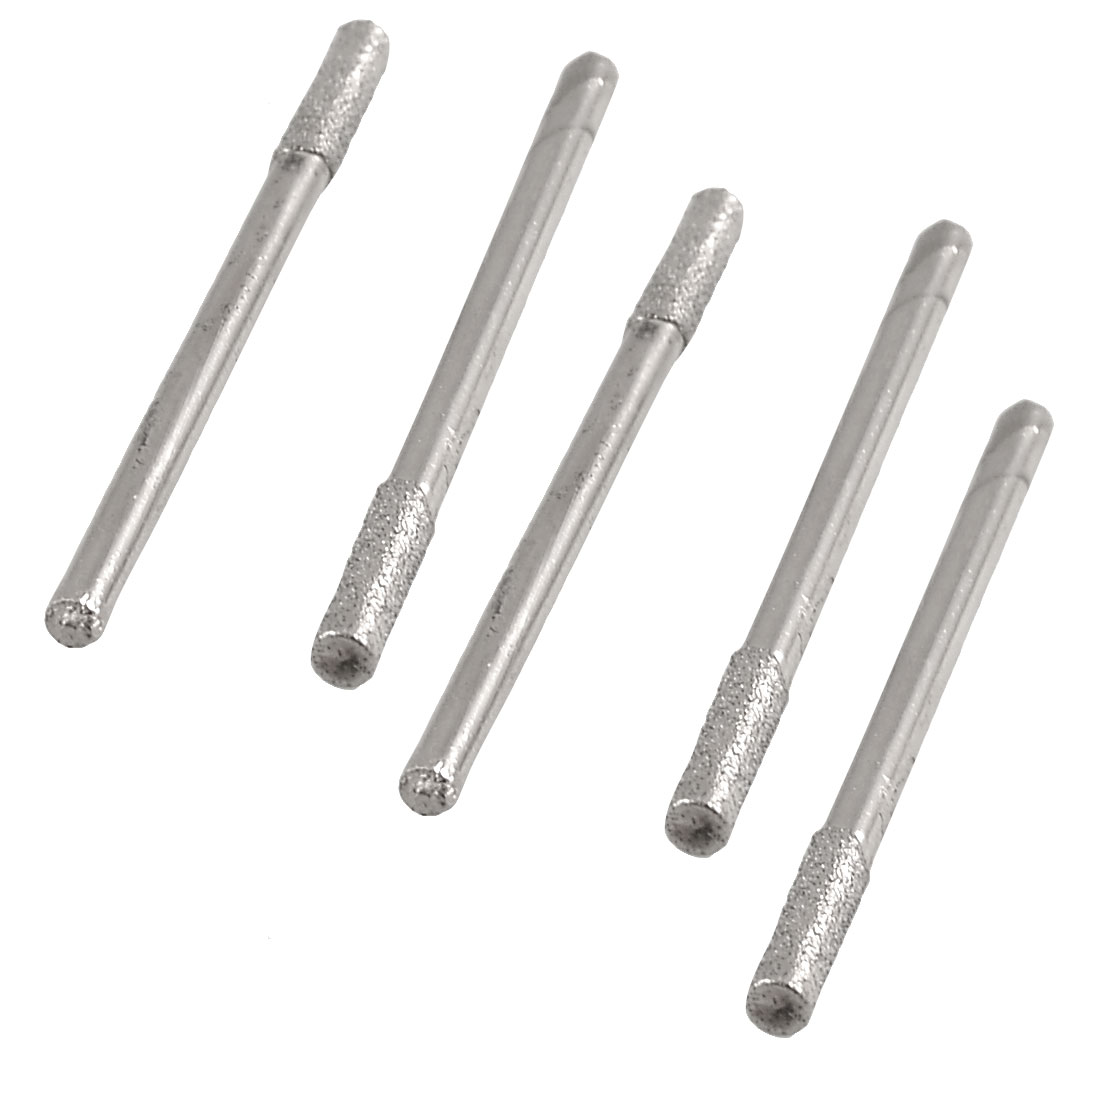 2.5mm x 2.3mm Cylindrical Nose Polisher Diamond Mounted Points File 5pcs